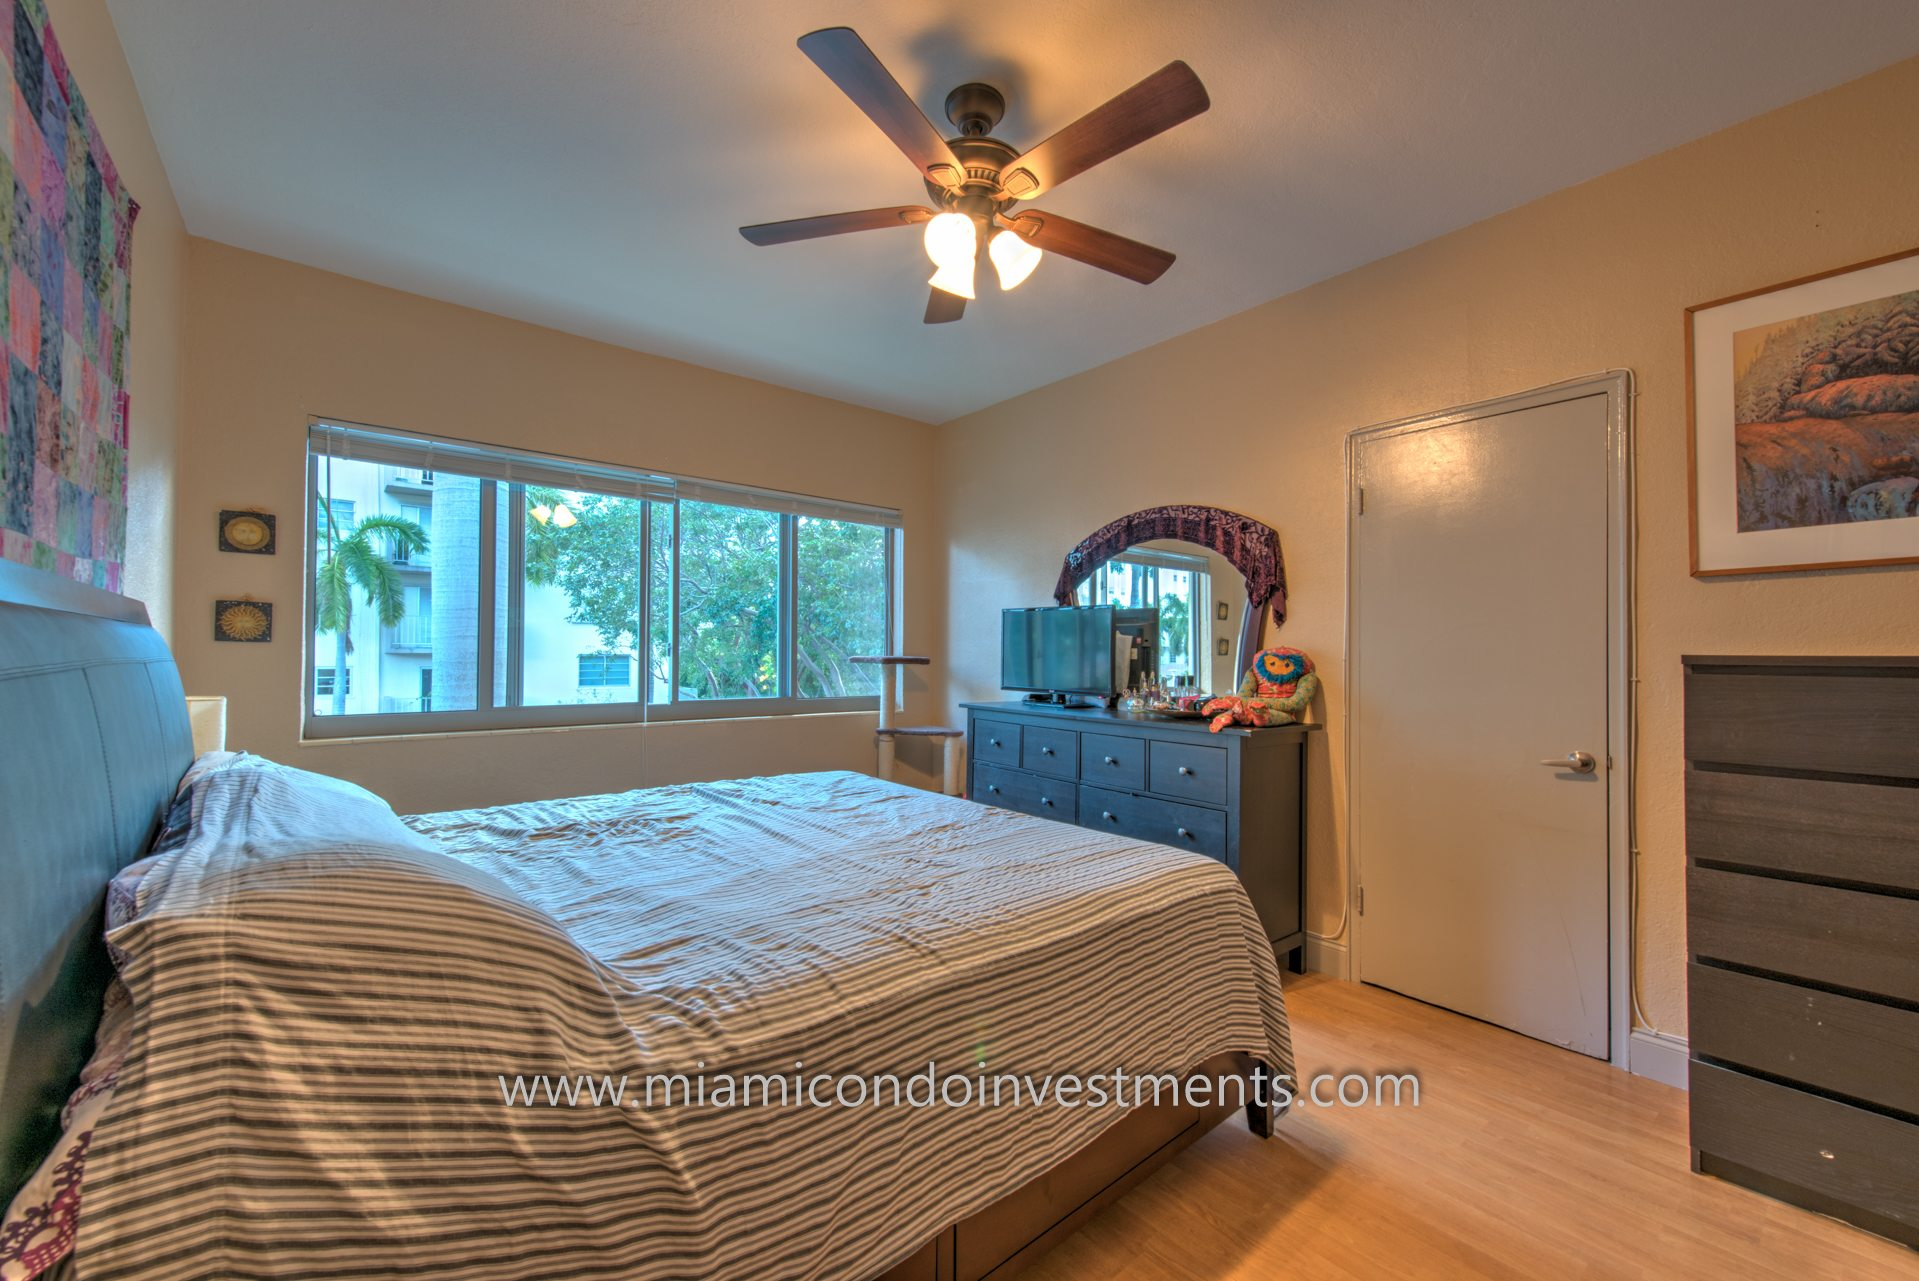 Investment Opportunity South Beach 1 Bedroom Walking Distance To Lincoln Road With Low Monthly